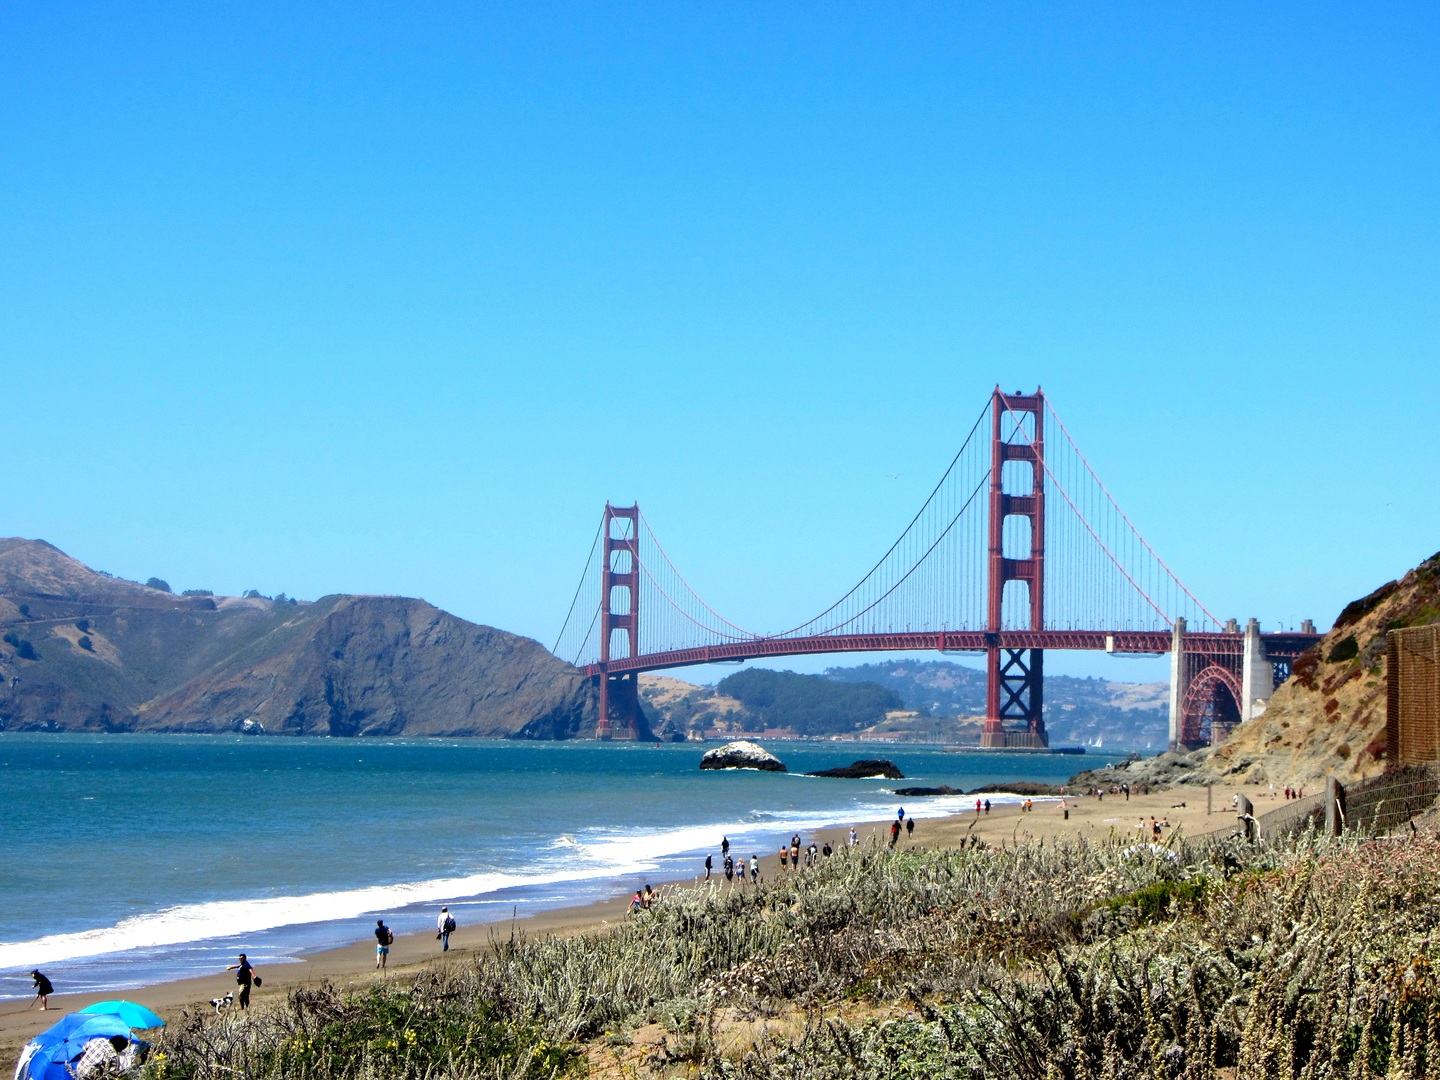 San Francisco - Top City To Flock To In The US